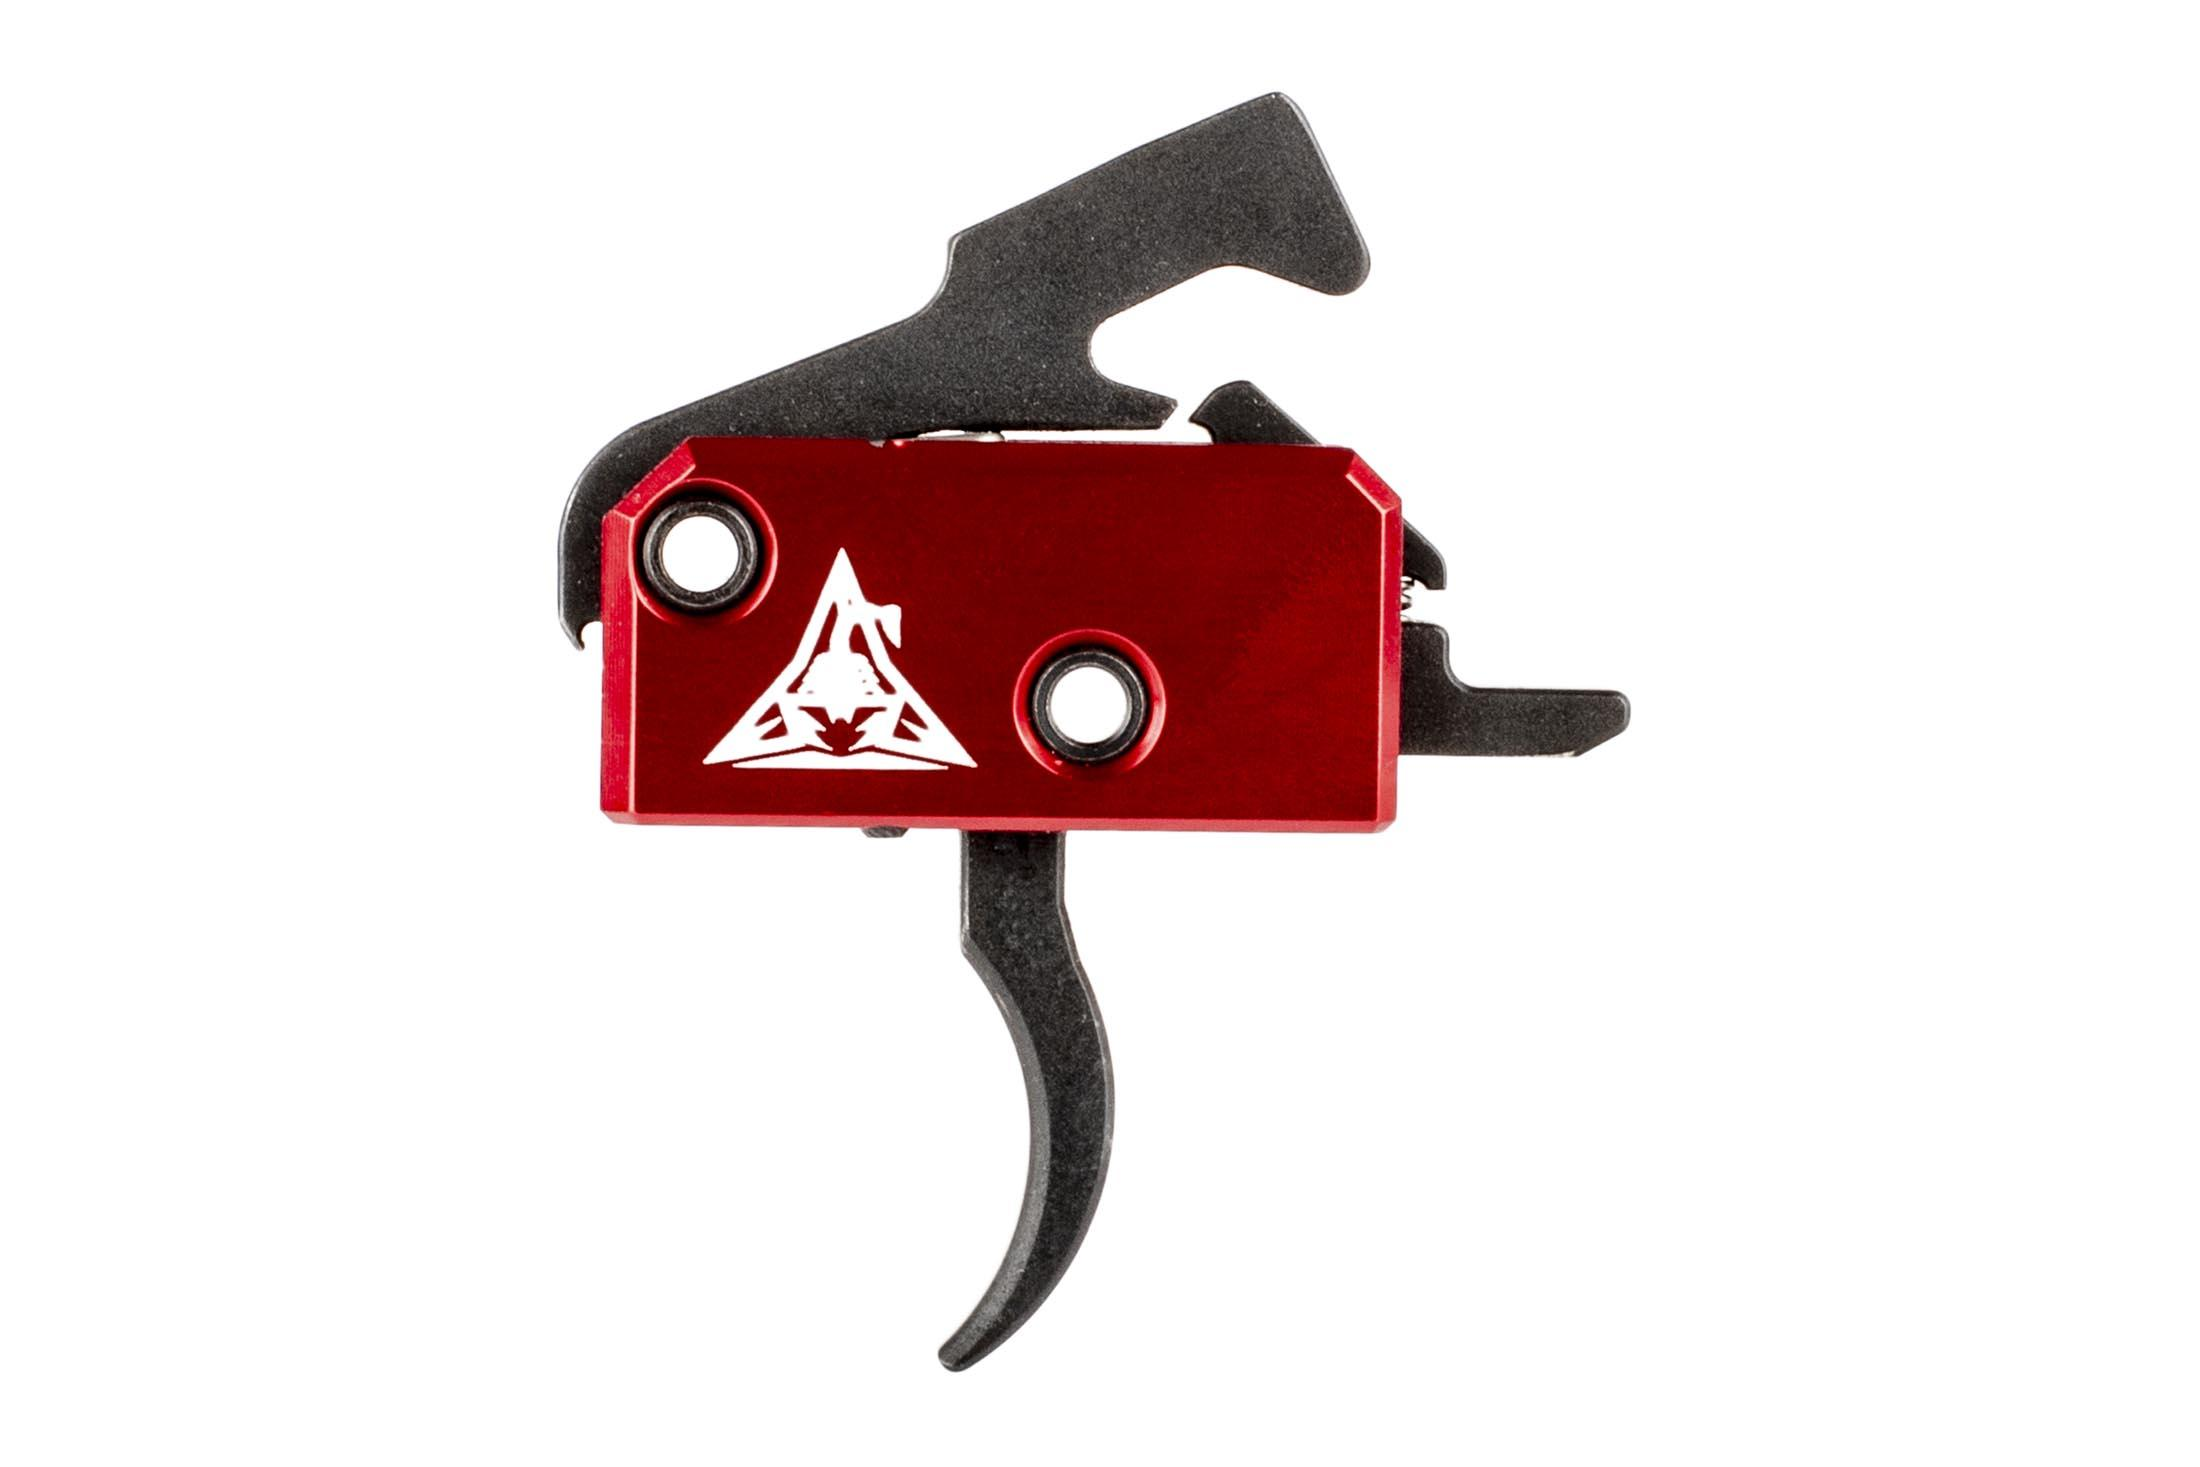 The Rise Armament Super Sporting Single Stage Trigger features a 3.5 lb trigger pull